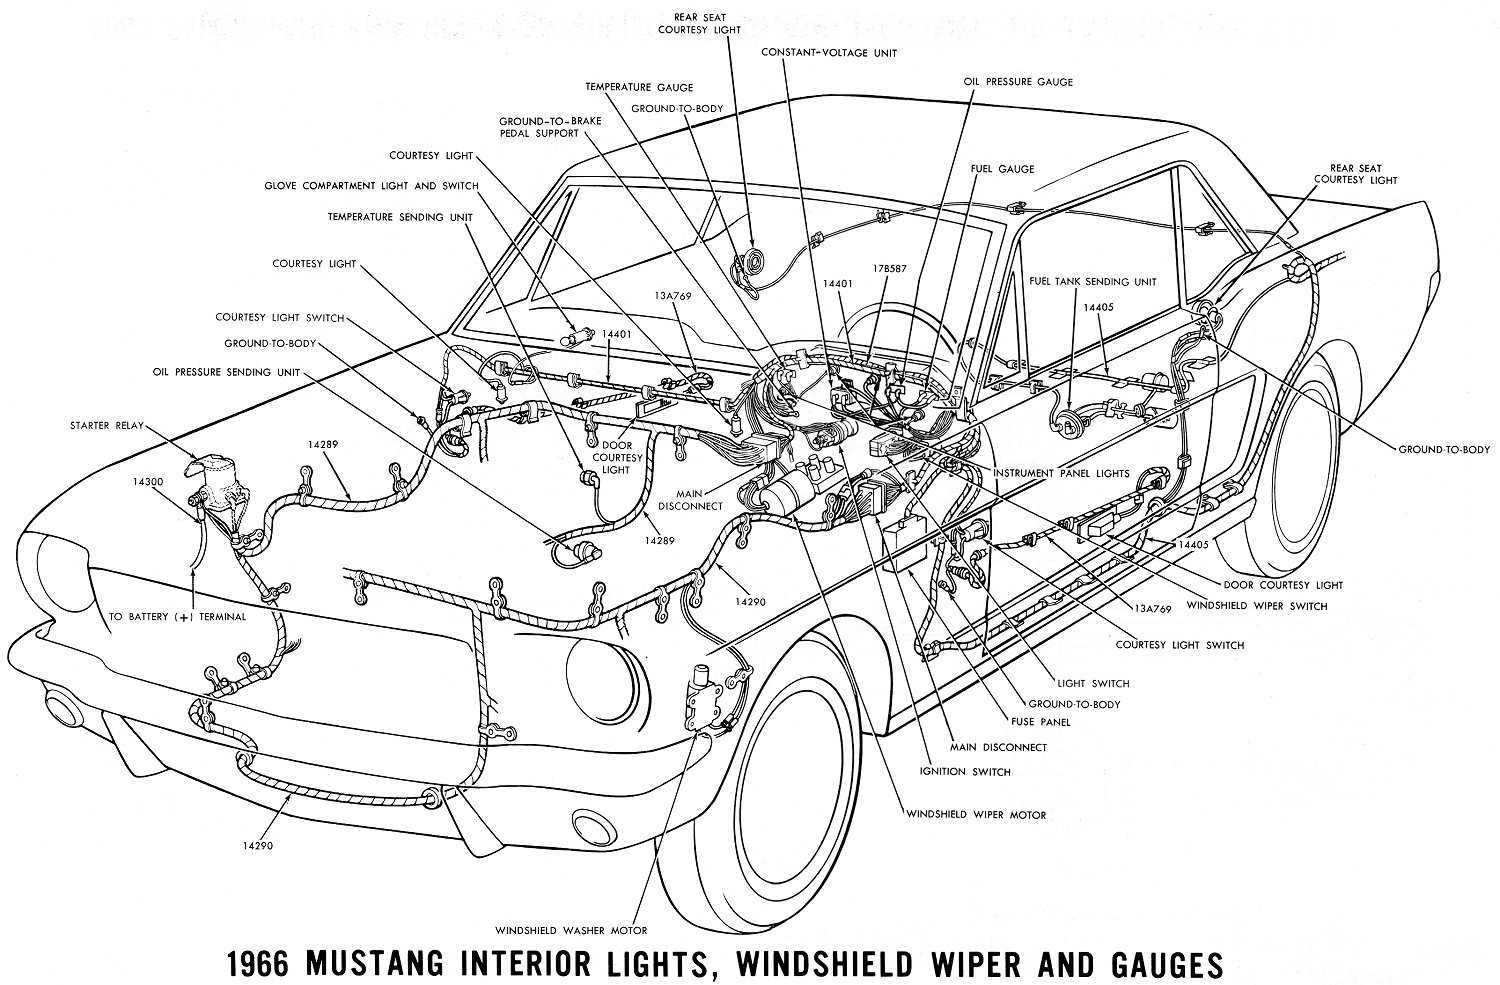 1966 Ford Mustang Alternator Wiring Diagram Library 68 Color Of Wires Interior Lights Windshield Wiper And Gauges Schematic